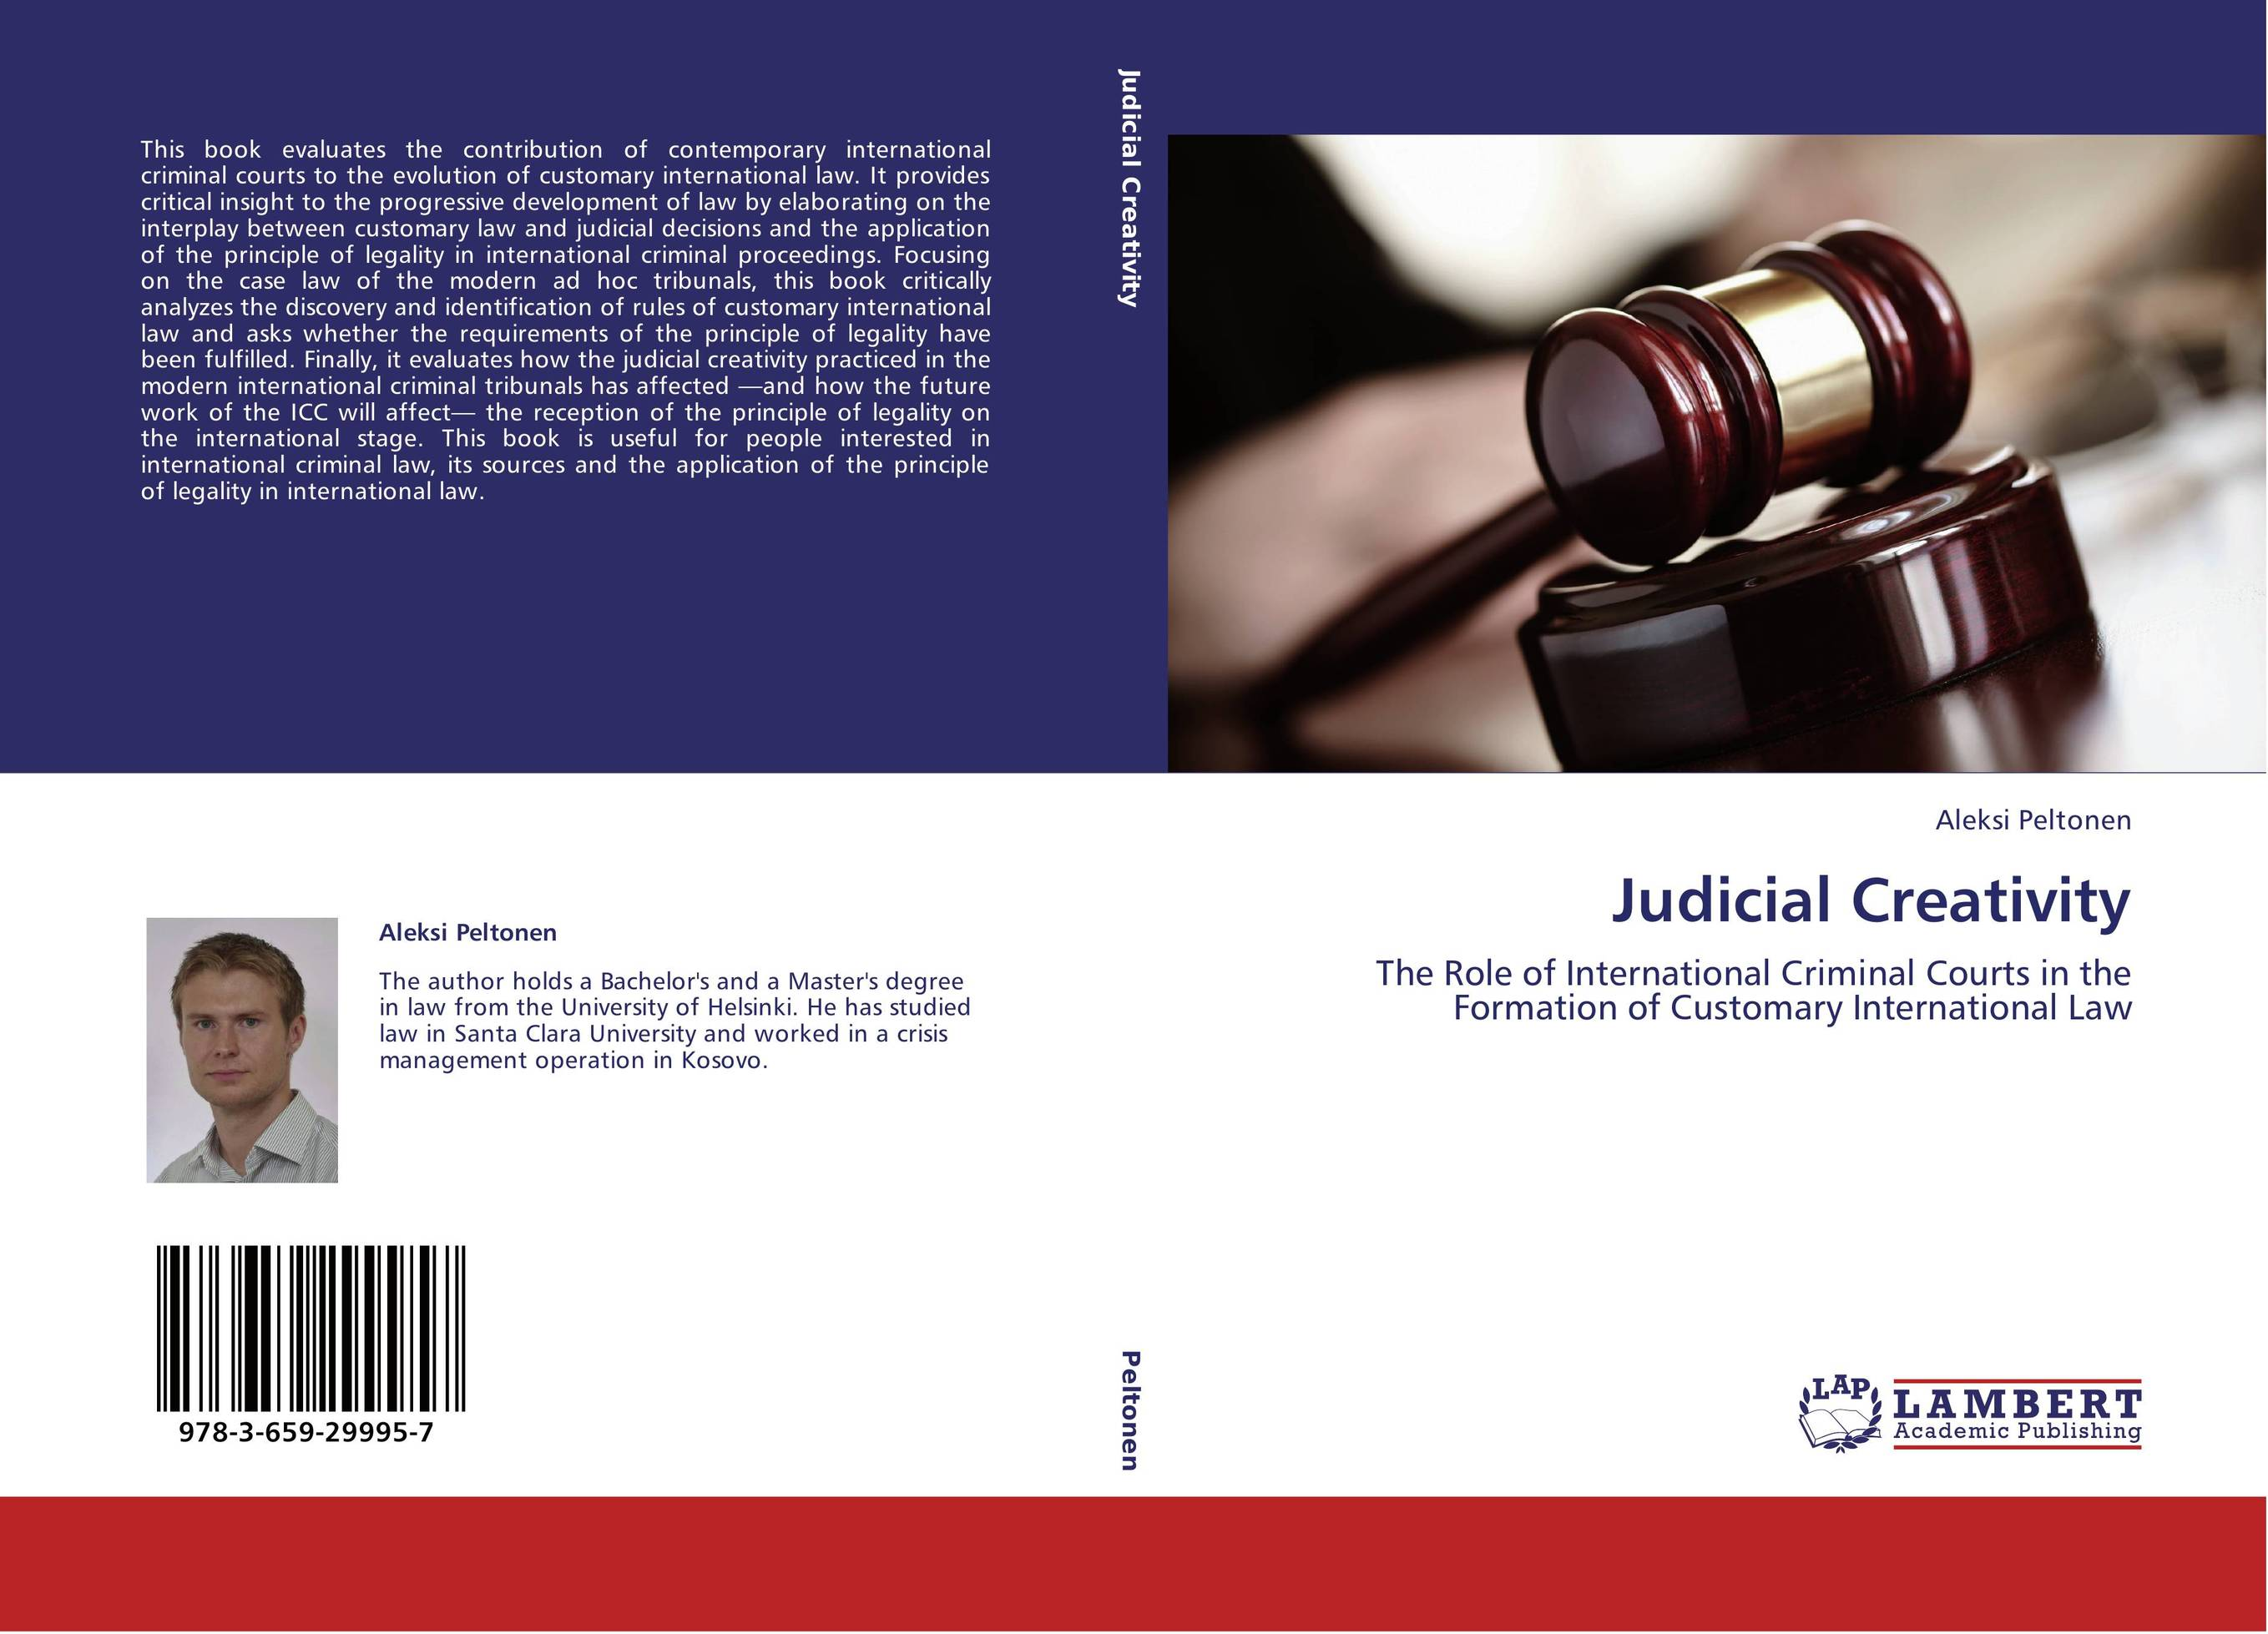 courts and justice in international law These problems may require international assistance that draws on best practices from elsewhere—for instance through hybrid courts or tribunals, composed of international and domestic justice actors.